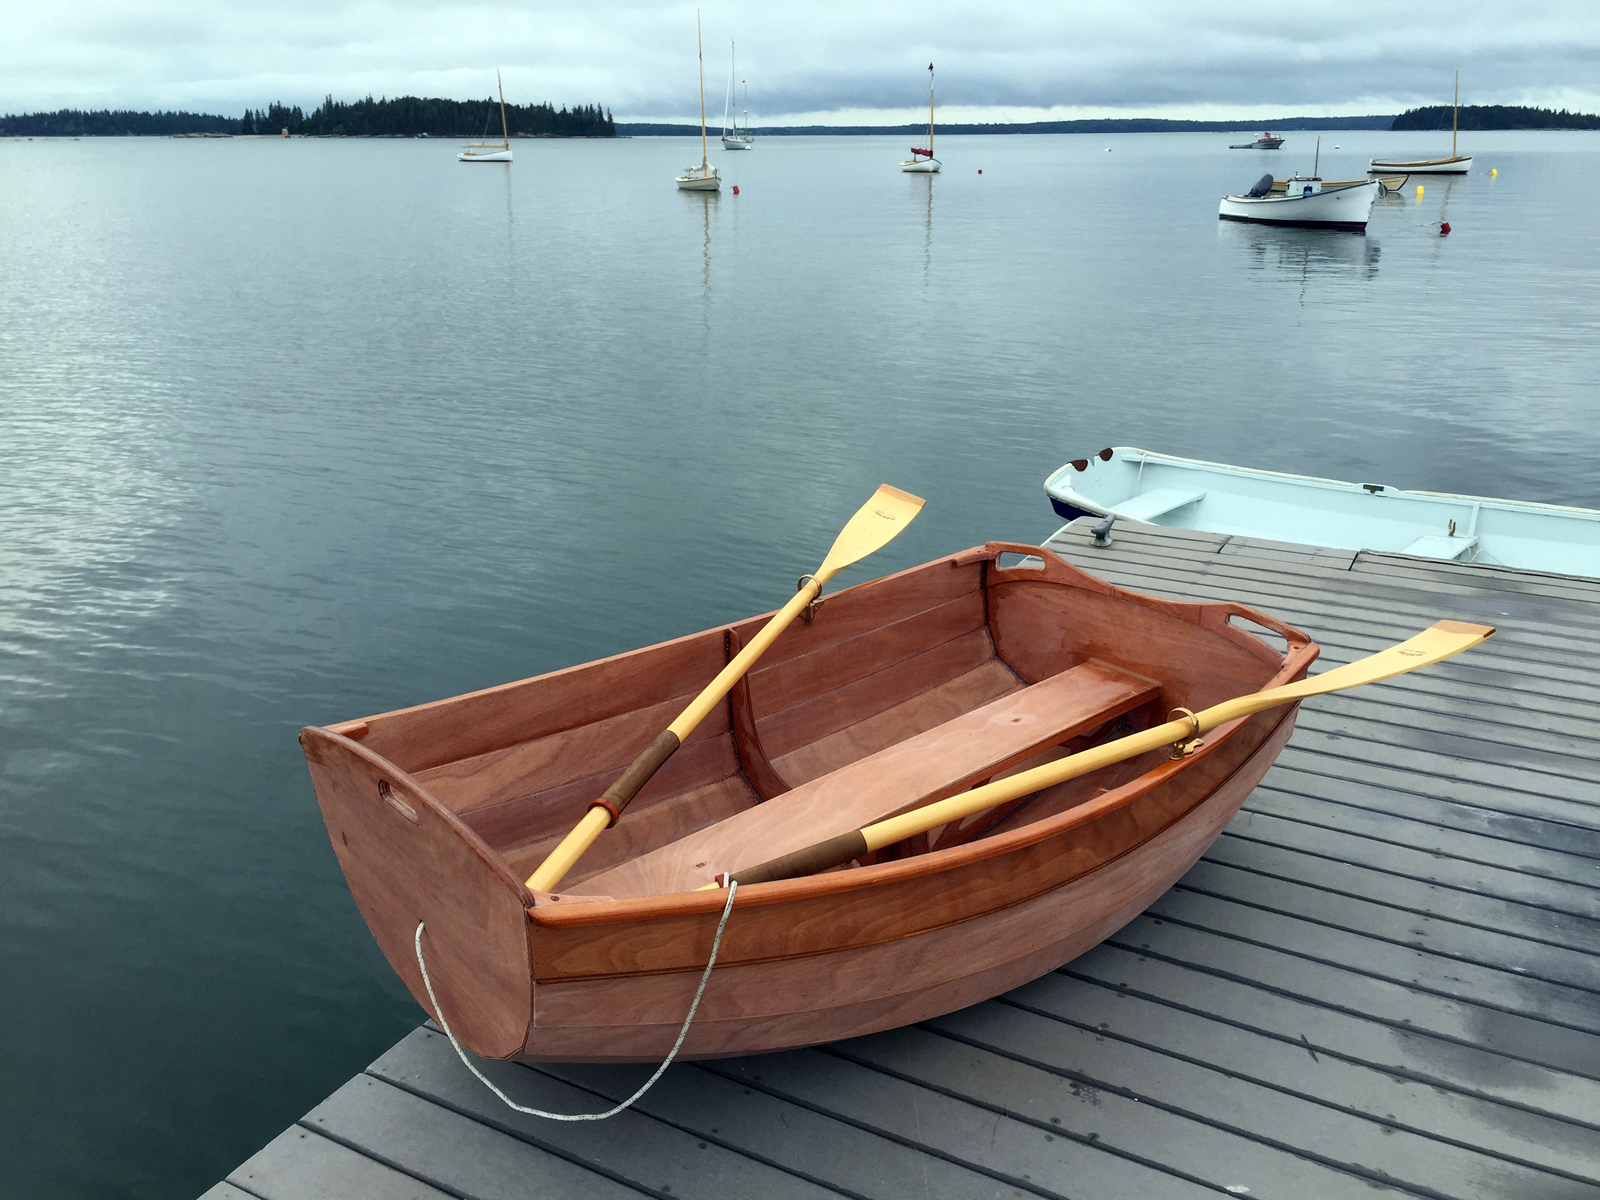 Ultralight Dinghy kit by Chesapeake Light Craft